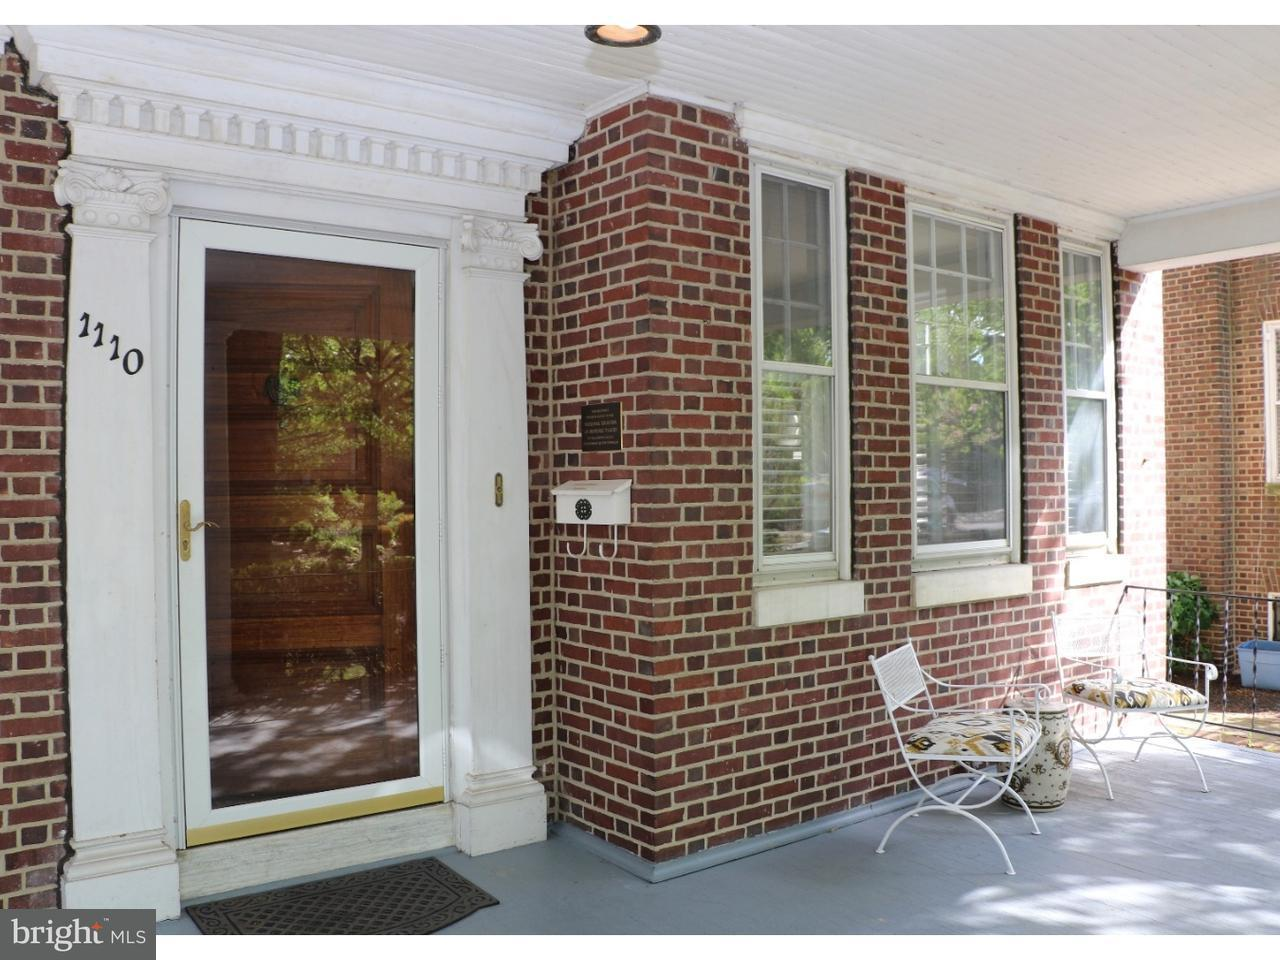 Single Family Home for Rent at 1110 N BROOM Street Wilmington, Delaware 19806 United States